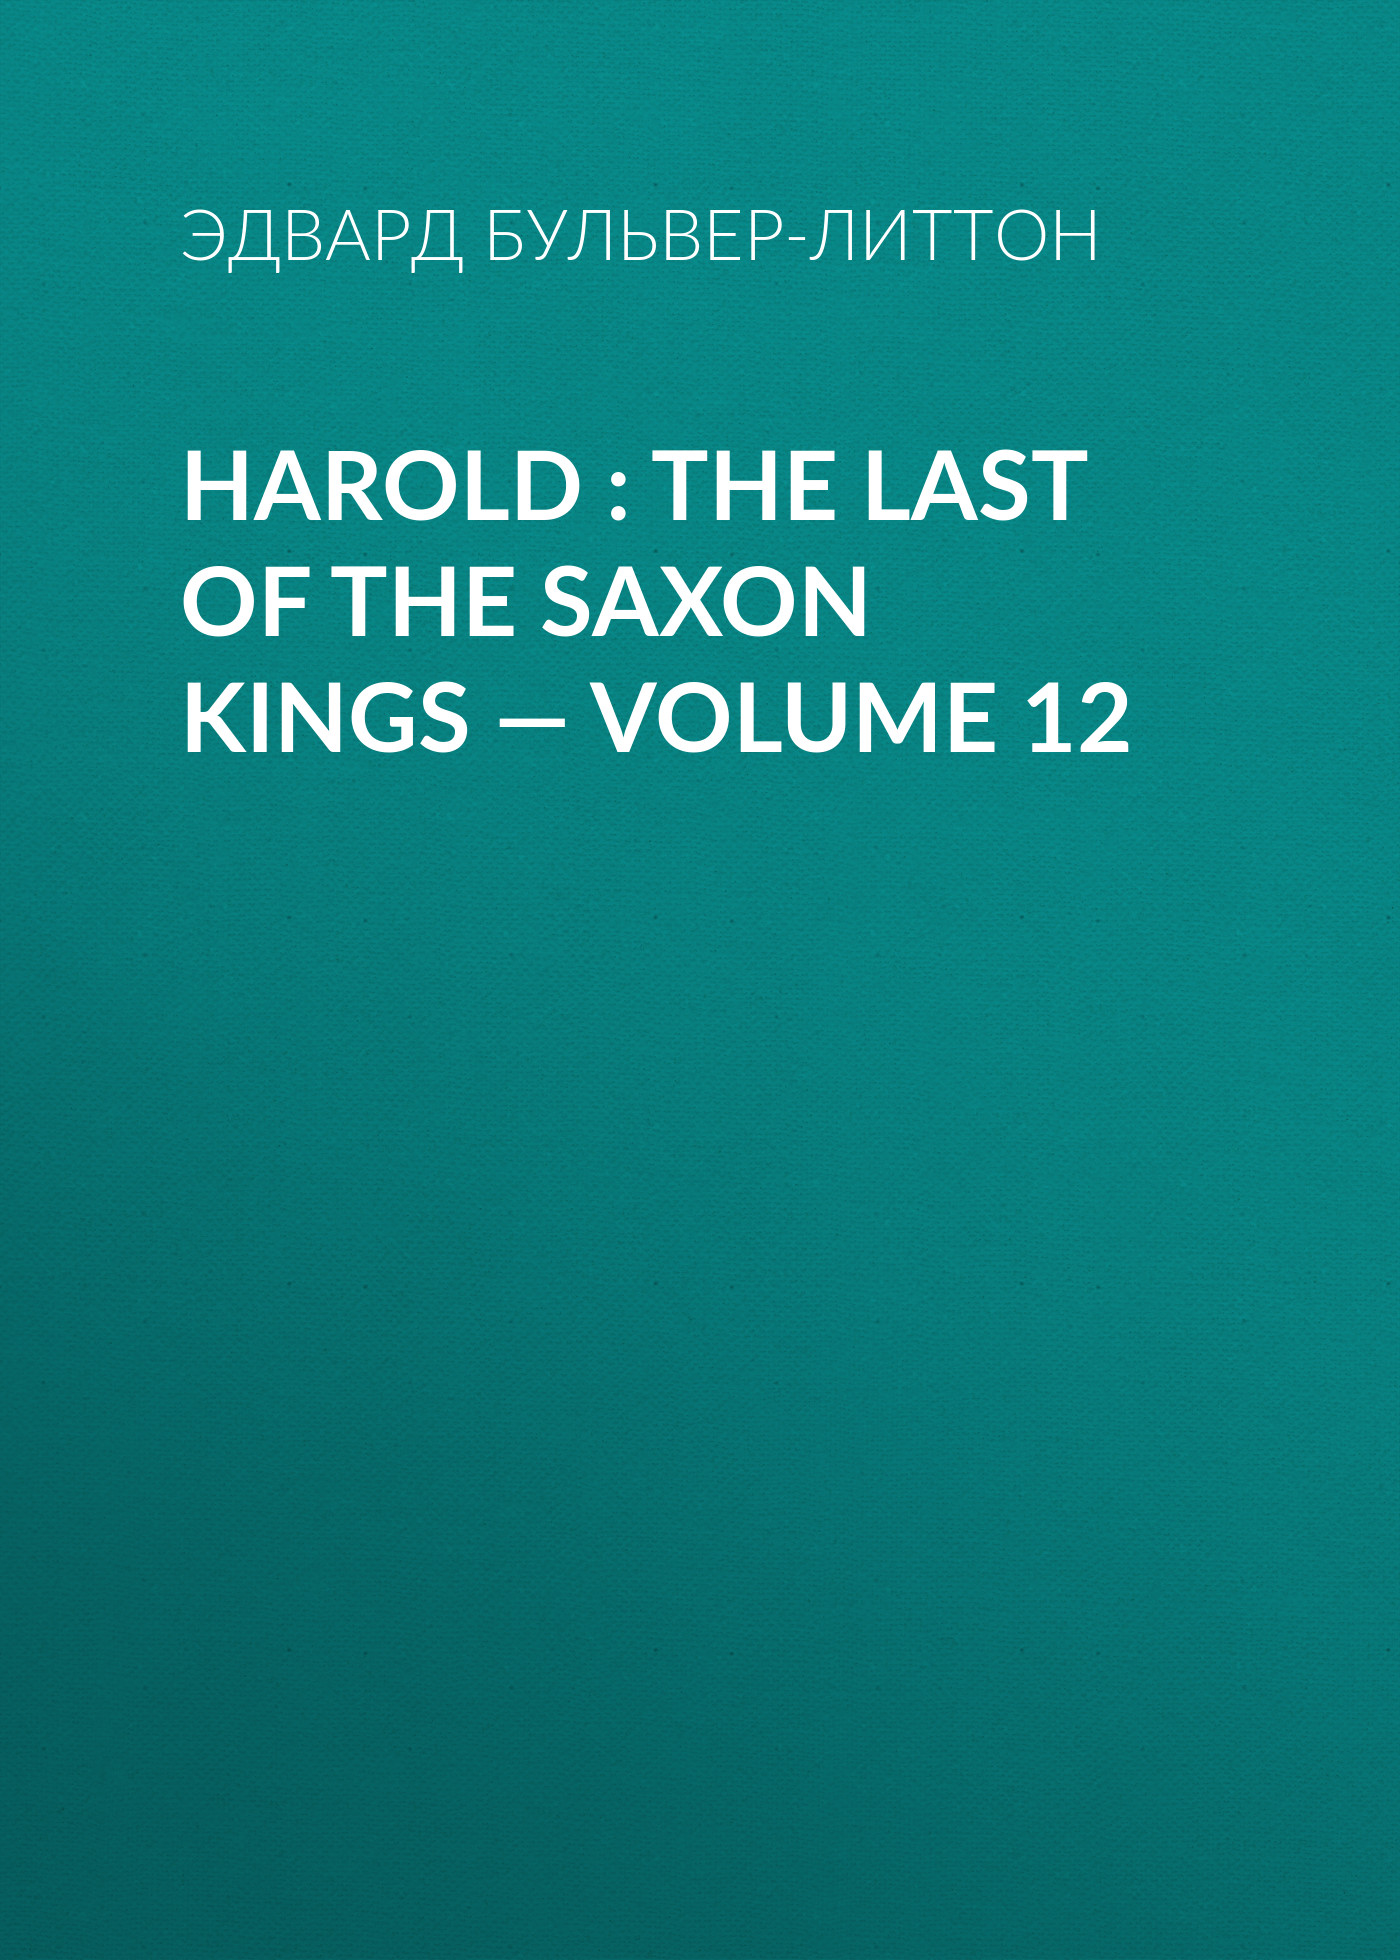 Эдвард Бульвер-Литтон Harold : the Last of the Saxon Kings — Volume 12 эдвард бульвер литтон harold the last of the saxon kings volume 06